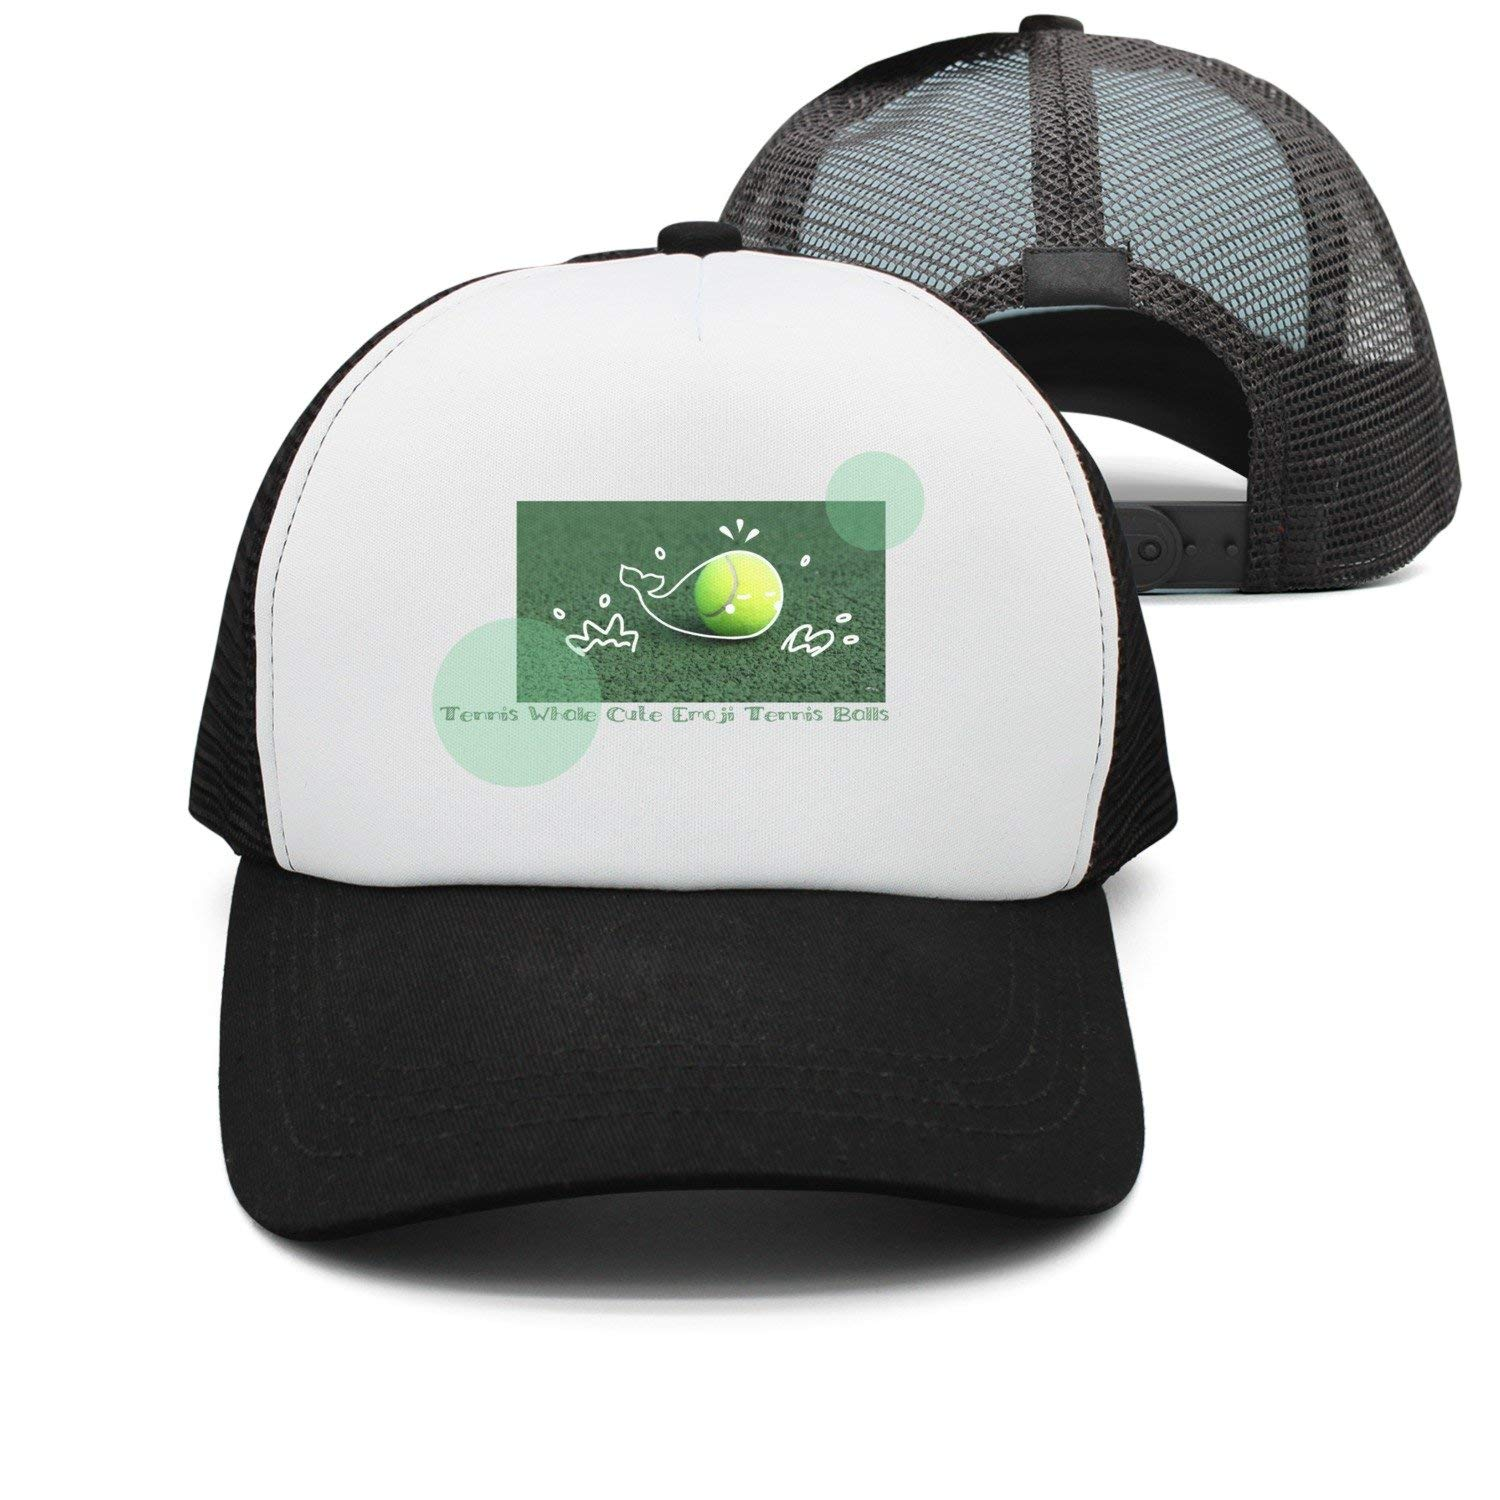 473cb3a2e7089 Get Quotations · YAYAZAN Caps Hats Mens Tennis Whale Cute Emoji Tennis  Balls Mesh Cool Graphic Adjustable